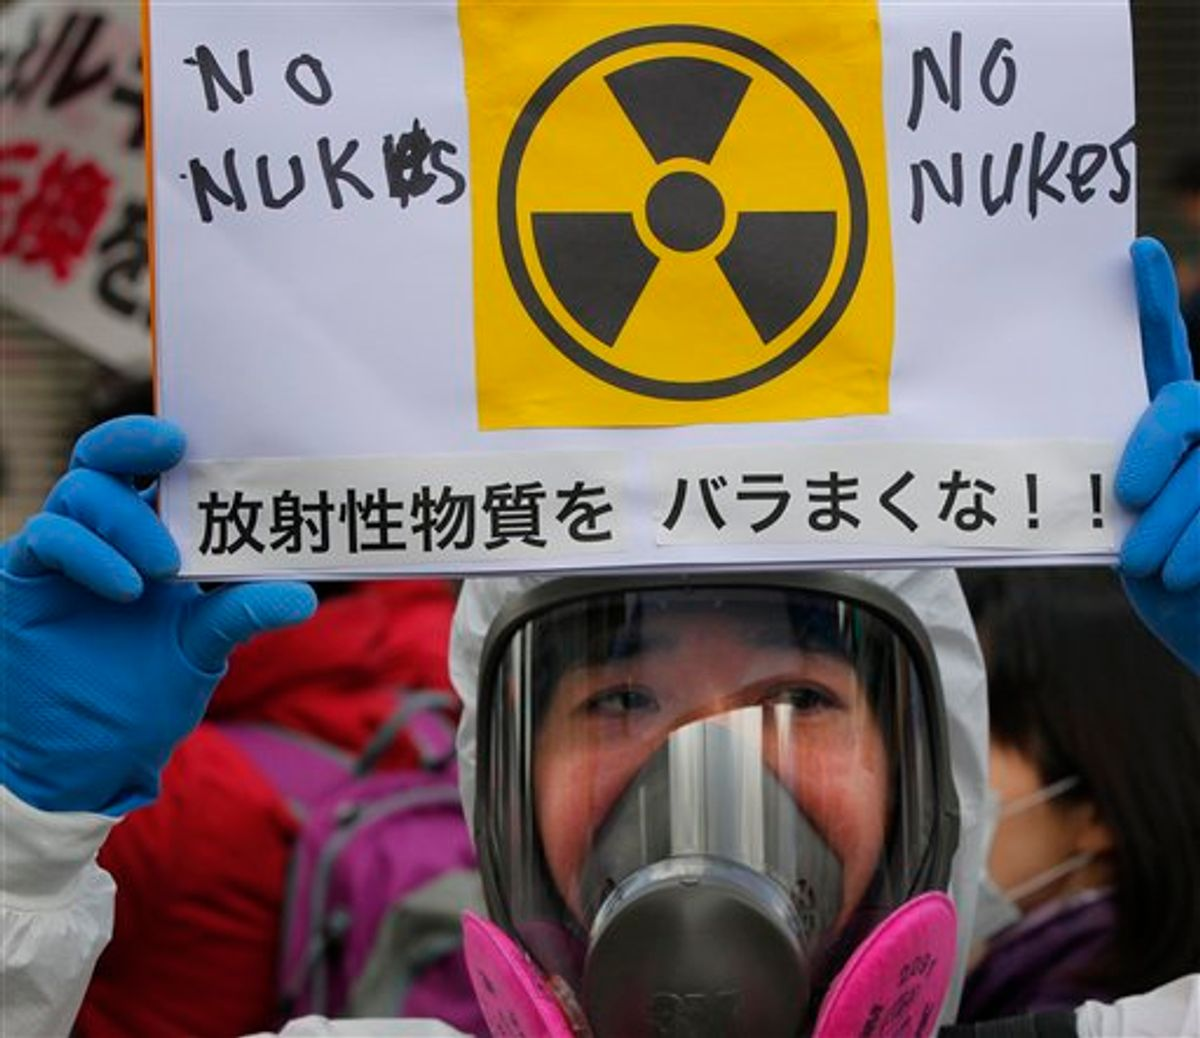 """A protester in protective mask holds a placard during an anti nuclear rally in Tokyo, Sunday, March 27, 2011. Leaked water in Unit 2 of the Fukushima Dai-ichi plant measured 10 million times higher than usual radioactivity levels when the reactor is operating normally, Tokyo Electric Power Co. spokesman Takashi Kurita told reporters in Tokyo. The placard has a message that reads """"Don't spread radioactive substance."""" (AP Photo/Itsuo Inouye) (AP)"""